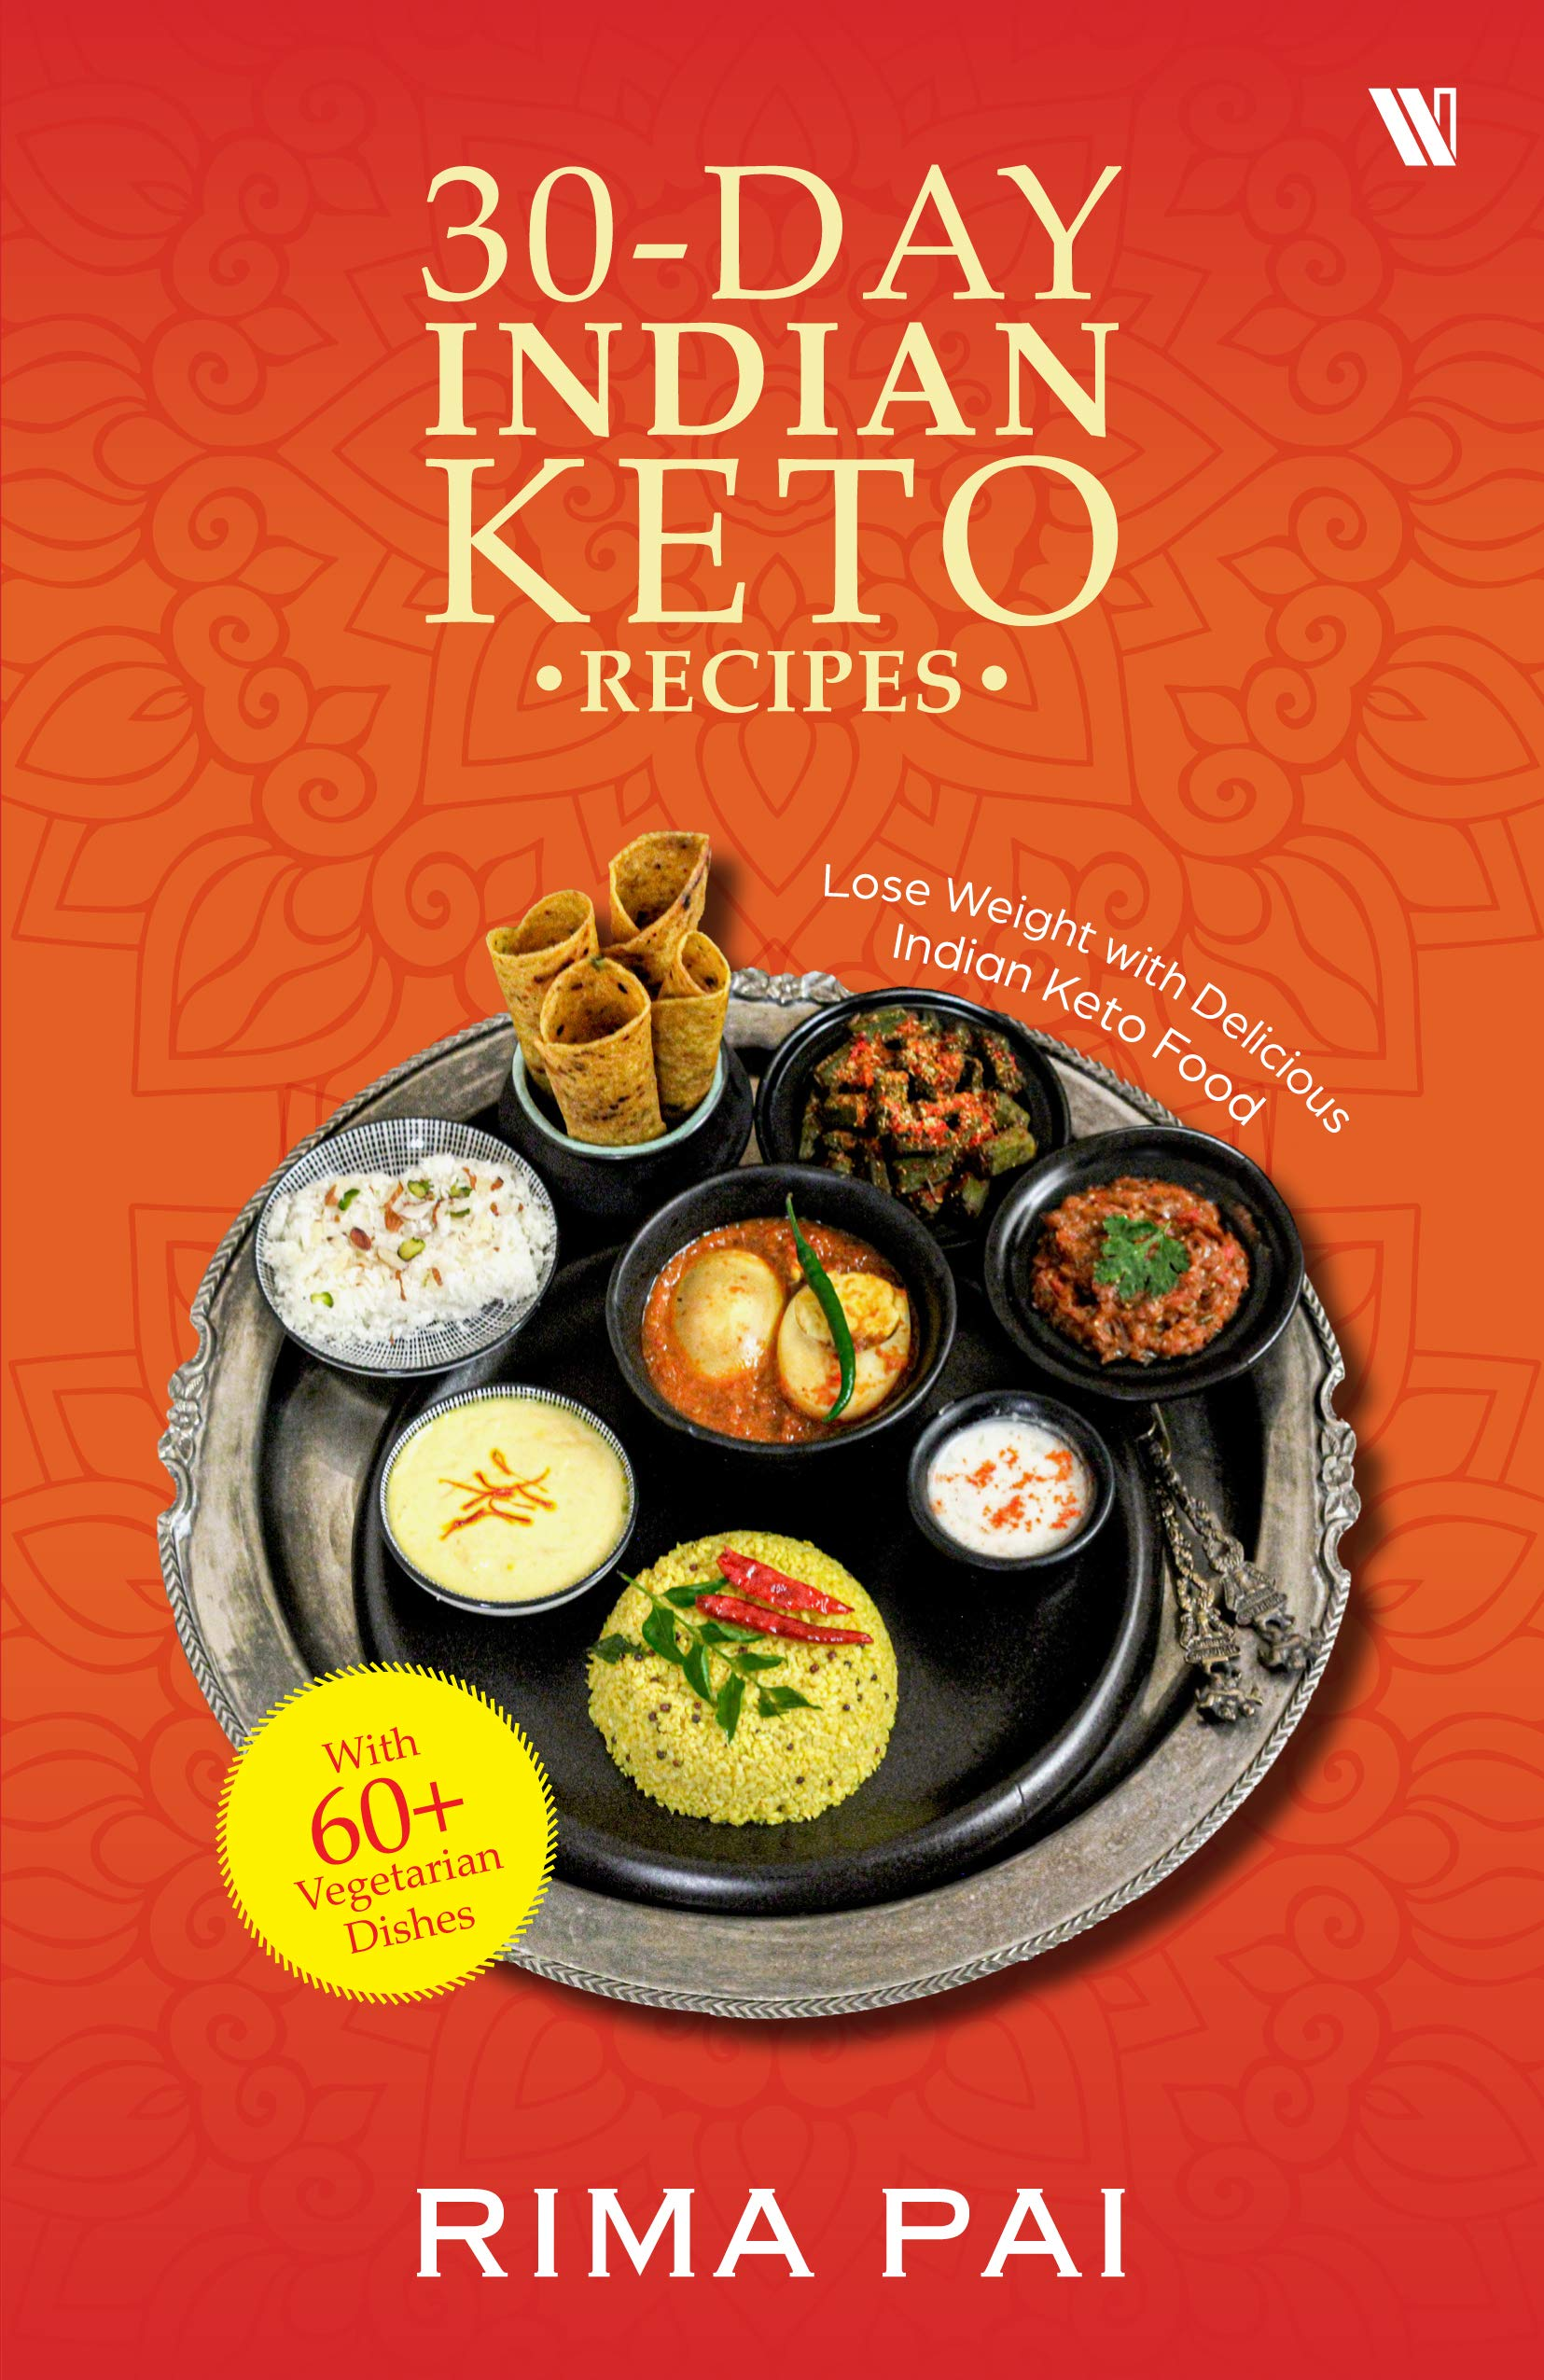 30 Day Indian Keto Recipe Book Pdf Free Download